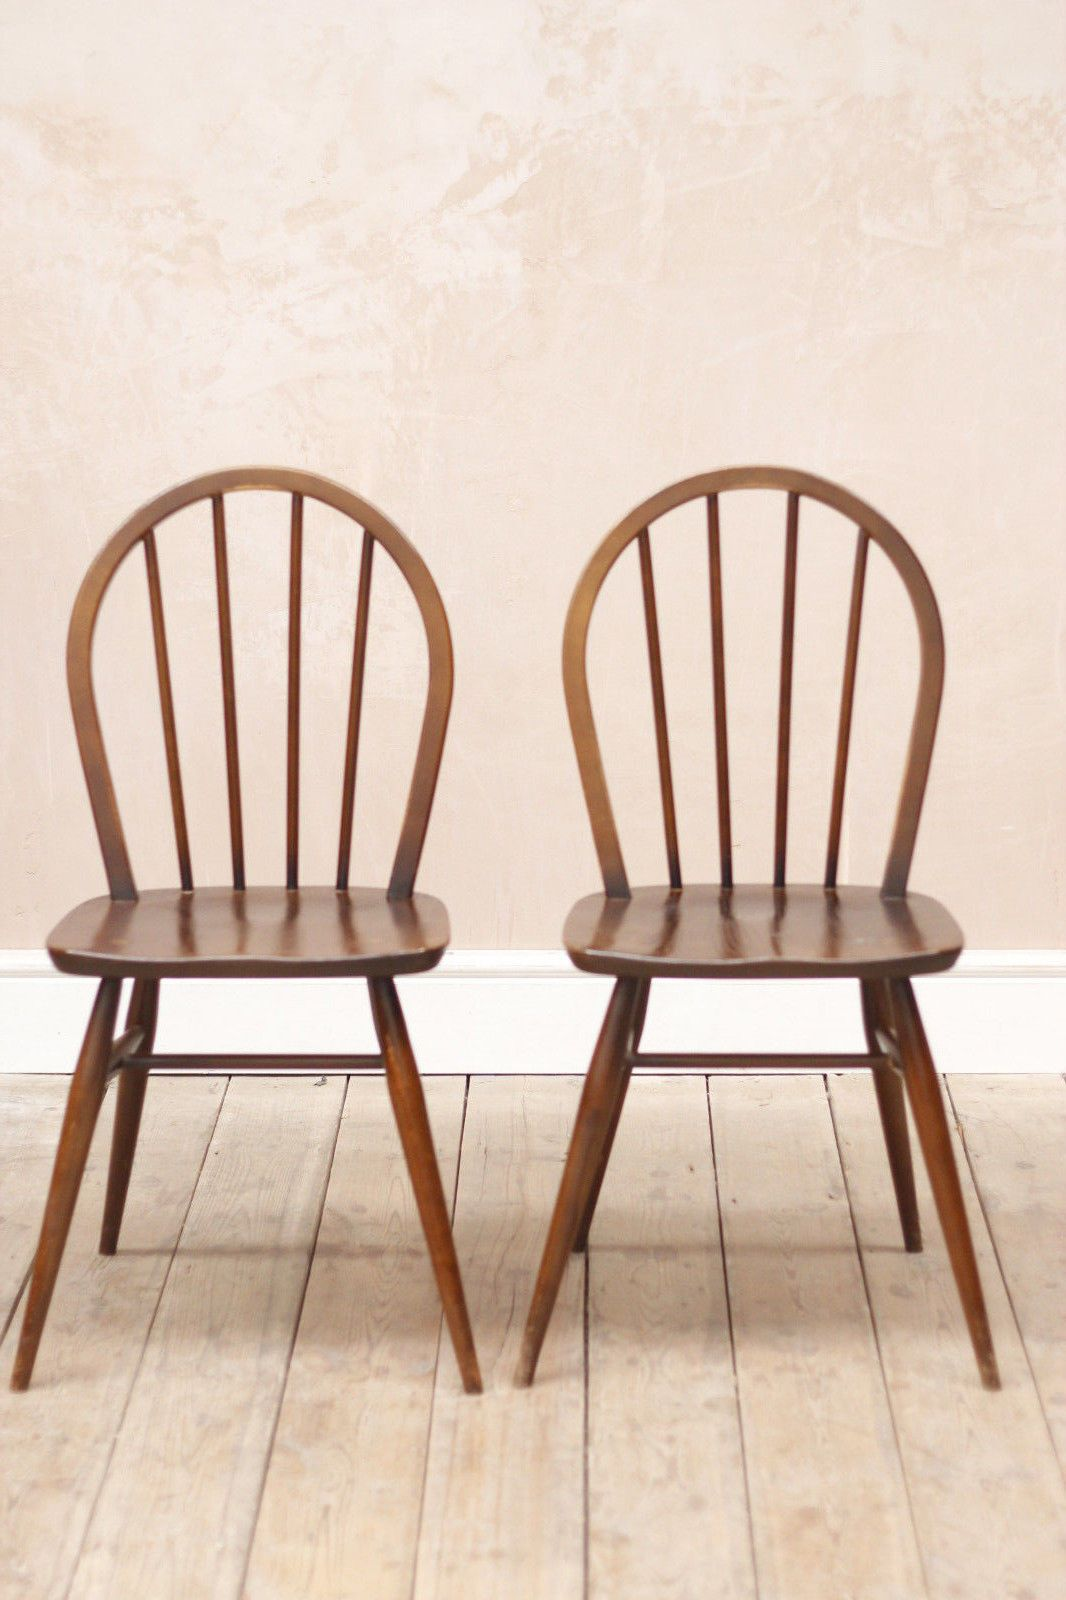 Two beautiful school chairs from 60 Furniture, Dining